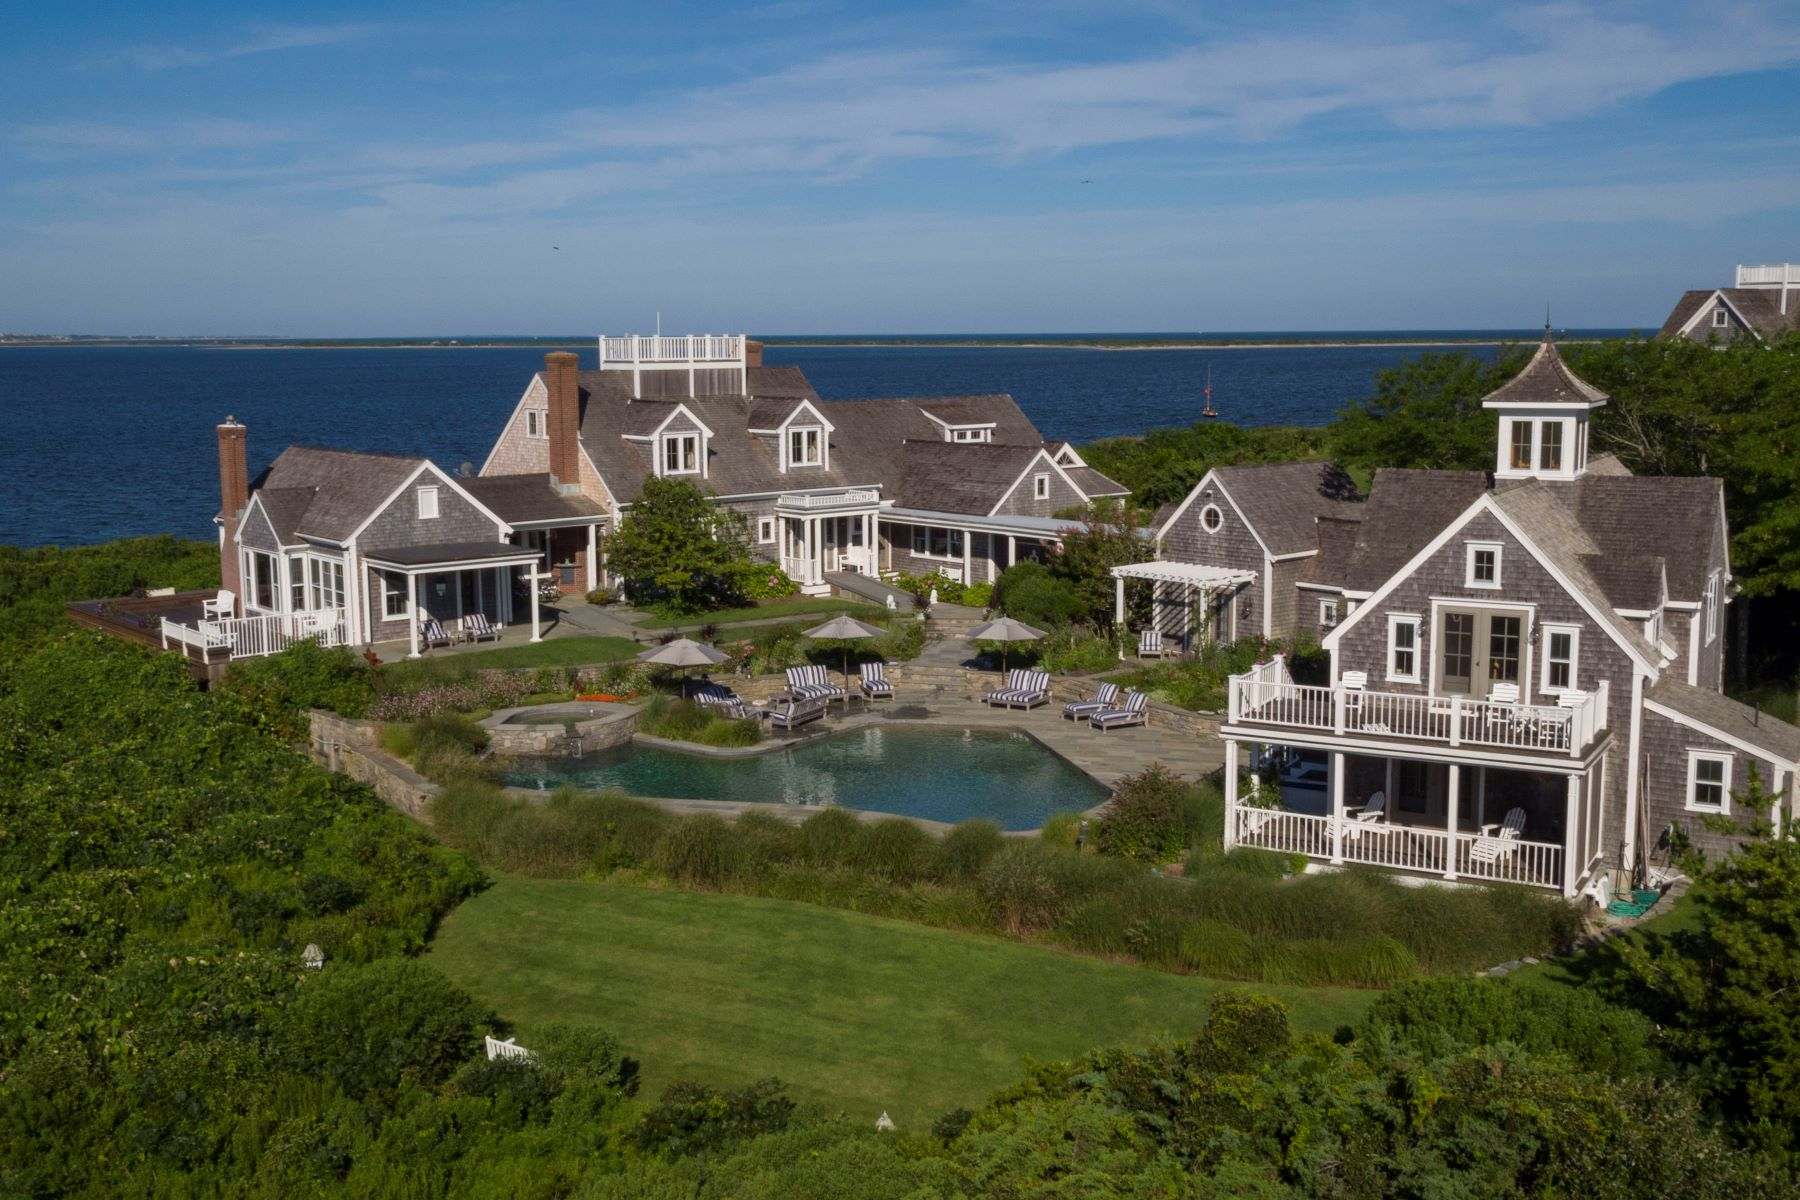 Casa Unifamiliar por un Venta en Entirely Unique Waterfront Estate 72 Pocomo Road 78 Pocomo Road Nantucket, Massachusetts 02554 Estados Unidos